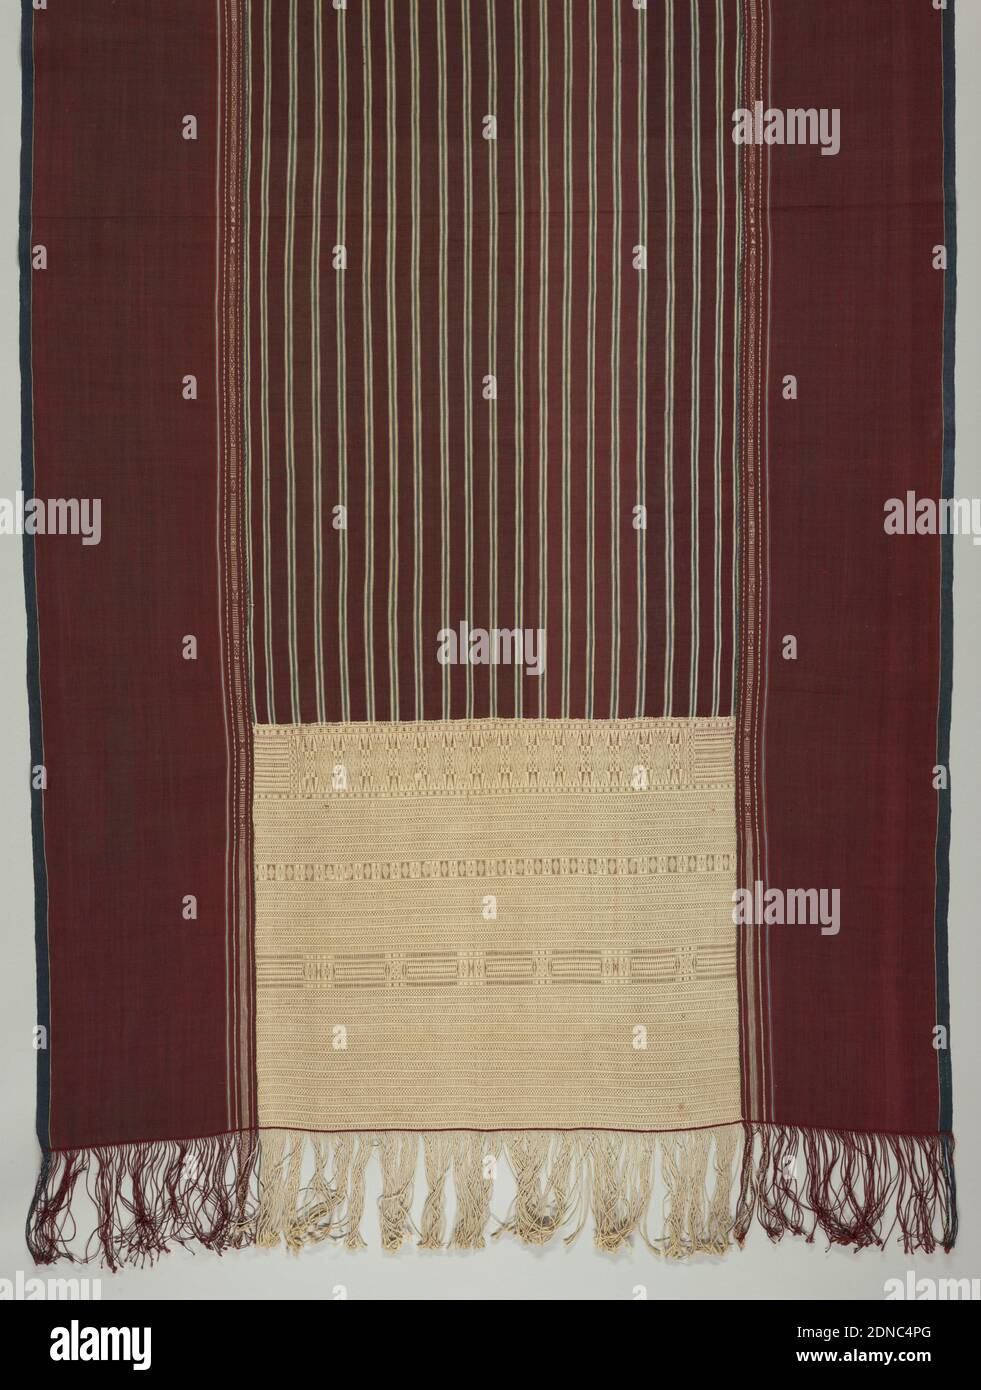 Ulos ragidup (ceremonial shoulder cloth), Medium: cotton Technique: tied resist patterning in warp or weft (ikat) on plain weave, with supplementary weft patterning, Ulos ragidup, 'the cloth with the pattern of life', is a large ceremonial selendang (shoulder cloth) which is wrapped around the groom's mother by the bride's father at a wedding. Center area in dark maroon with vertical stripes of light blue and a bright red-brown. Ornamented on either end with intricate insets of cream color with horizontal bands of design, by making use of one additional warp. Wide borders in dark red Stock Photo